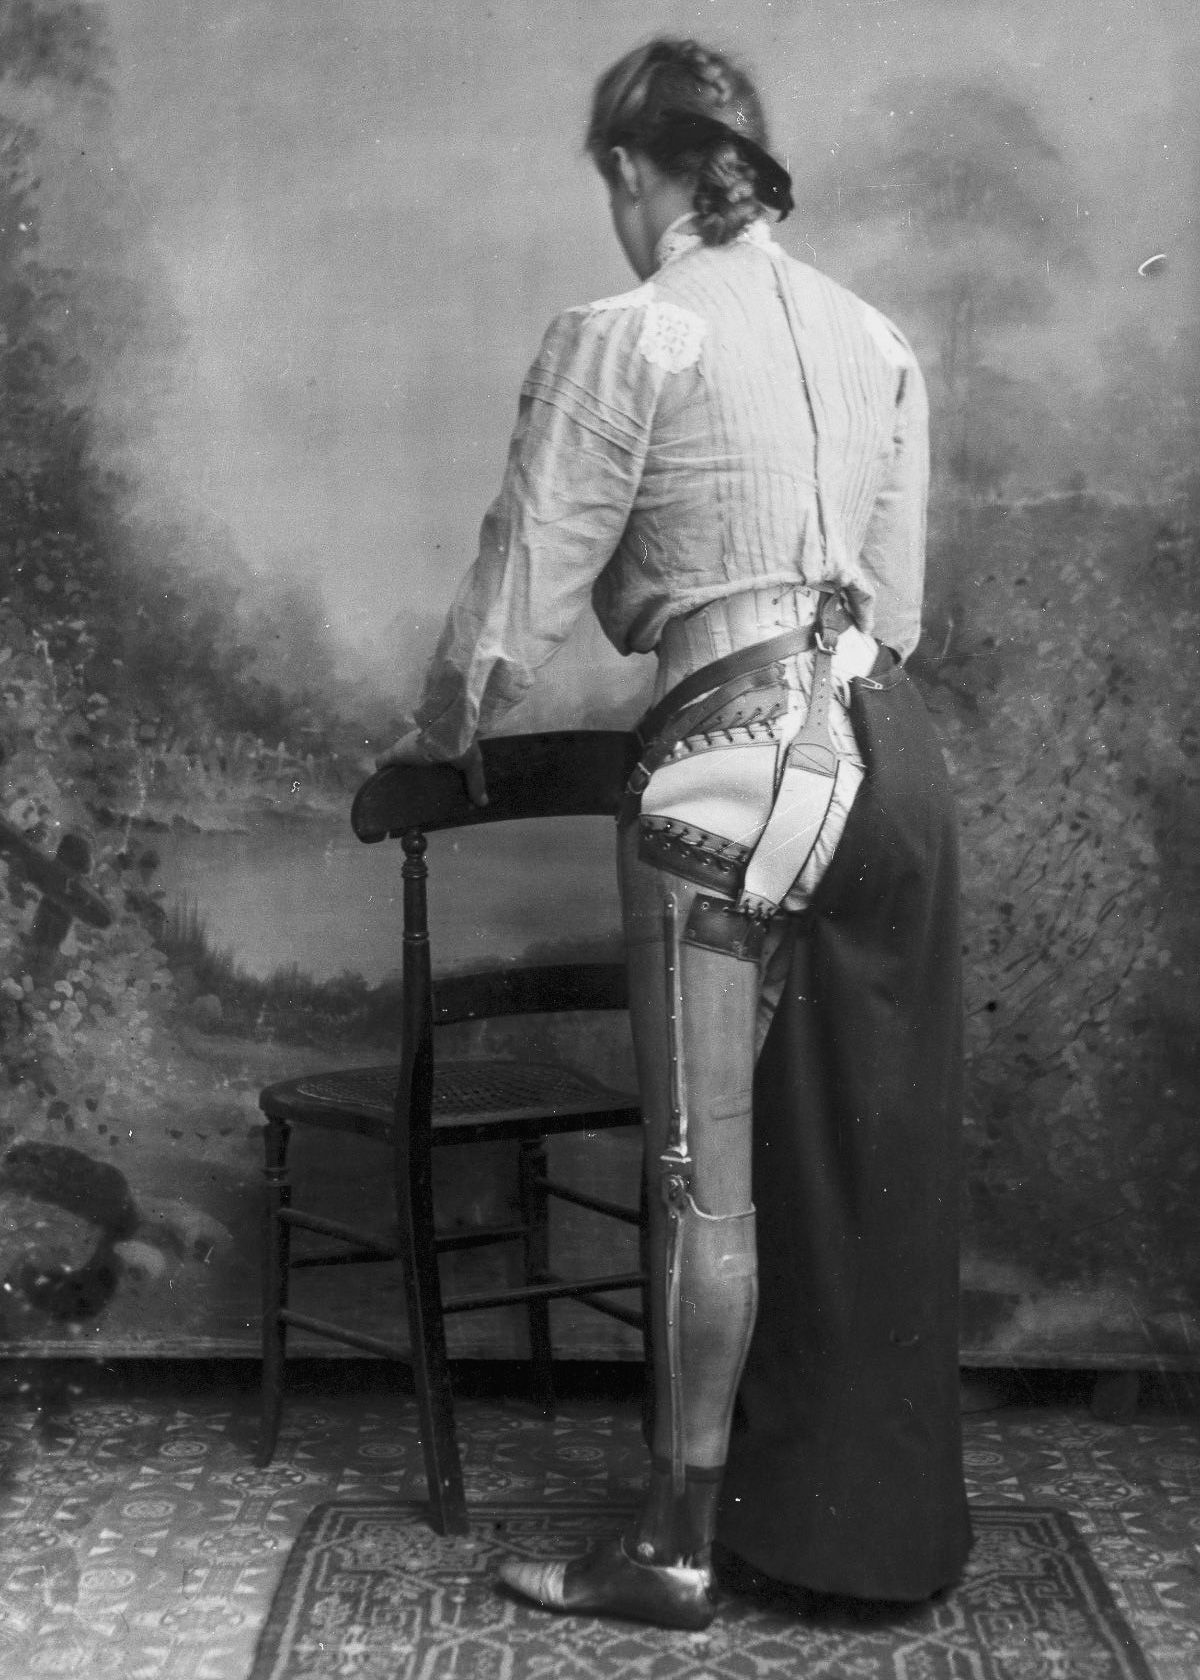 Artificial limbs from 1900 were decades ahead of their time http://mashable.com/2015/07/26/early-prosthesis/